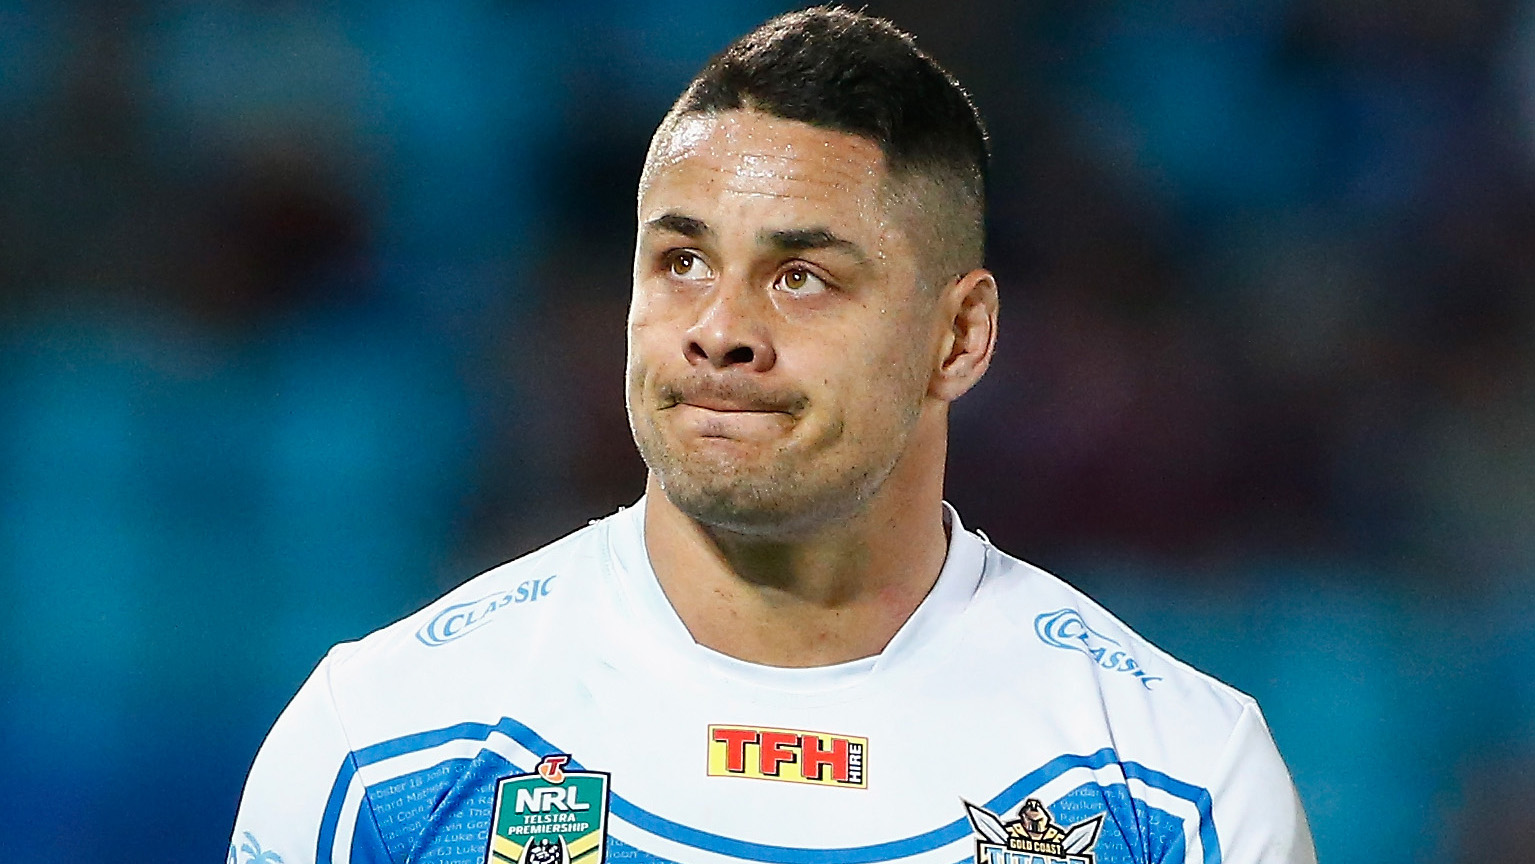 Jarryd Hayne accused of rape by U.S. woman